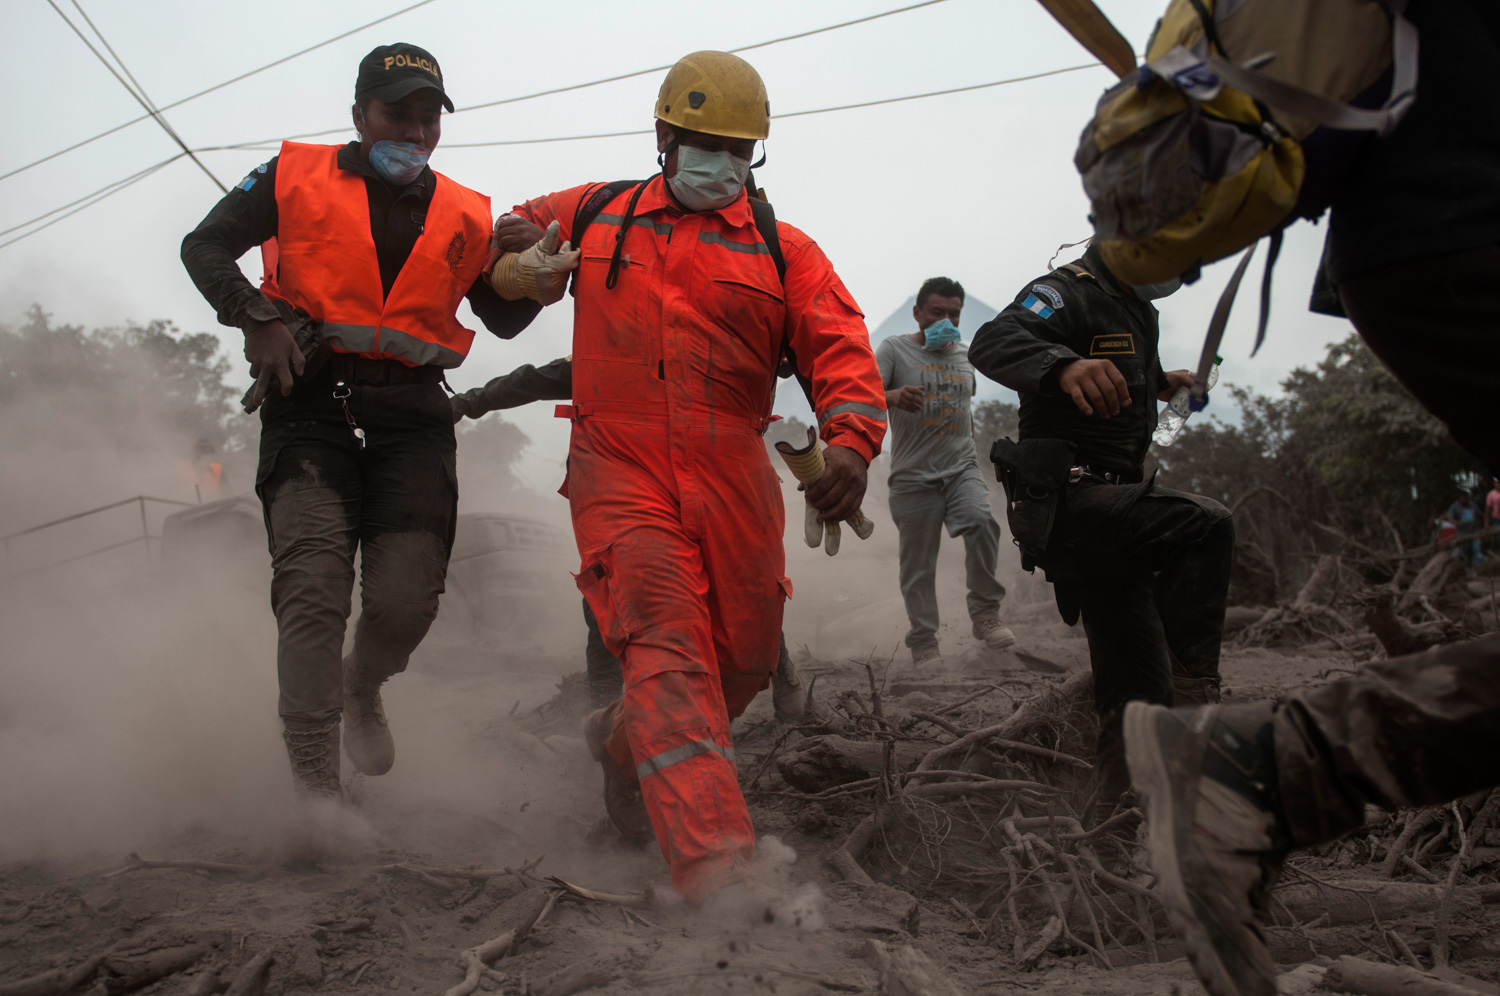 <div class='meta'><div class='origin-logo' data-origin='none'></div><span class='caption-text' data-credit='Oliver de Ros/AP Photo'>Firefighters and police are forced to evacuate a search and rescue effort as the Volcan de Fuego continues to spill out smoke and ash in Escuintla, Guatemala, Monday, June 4, 2018.</span></div>